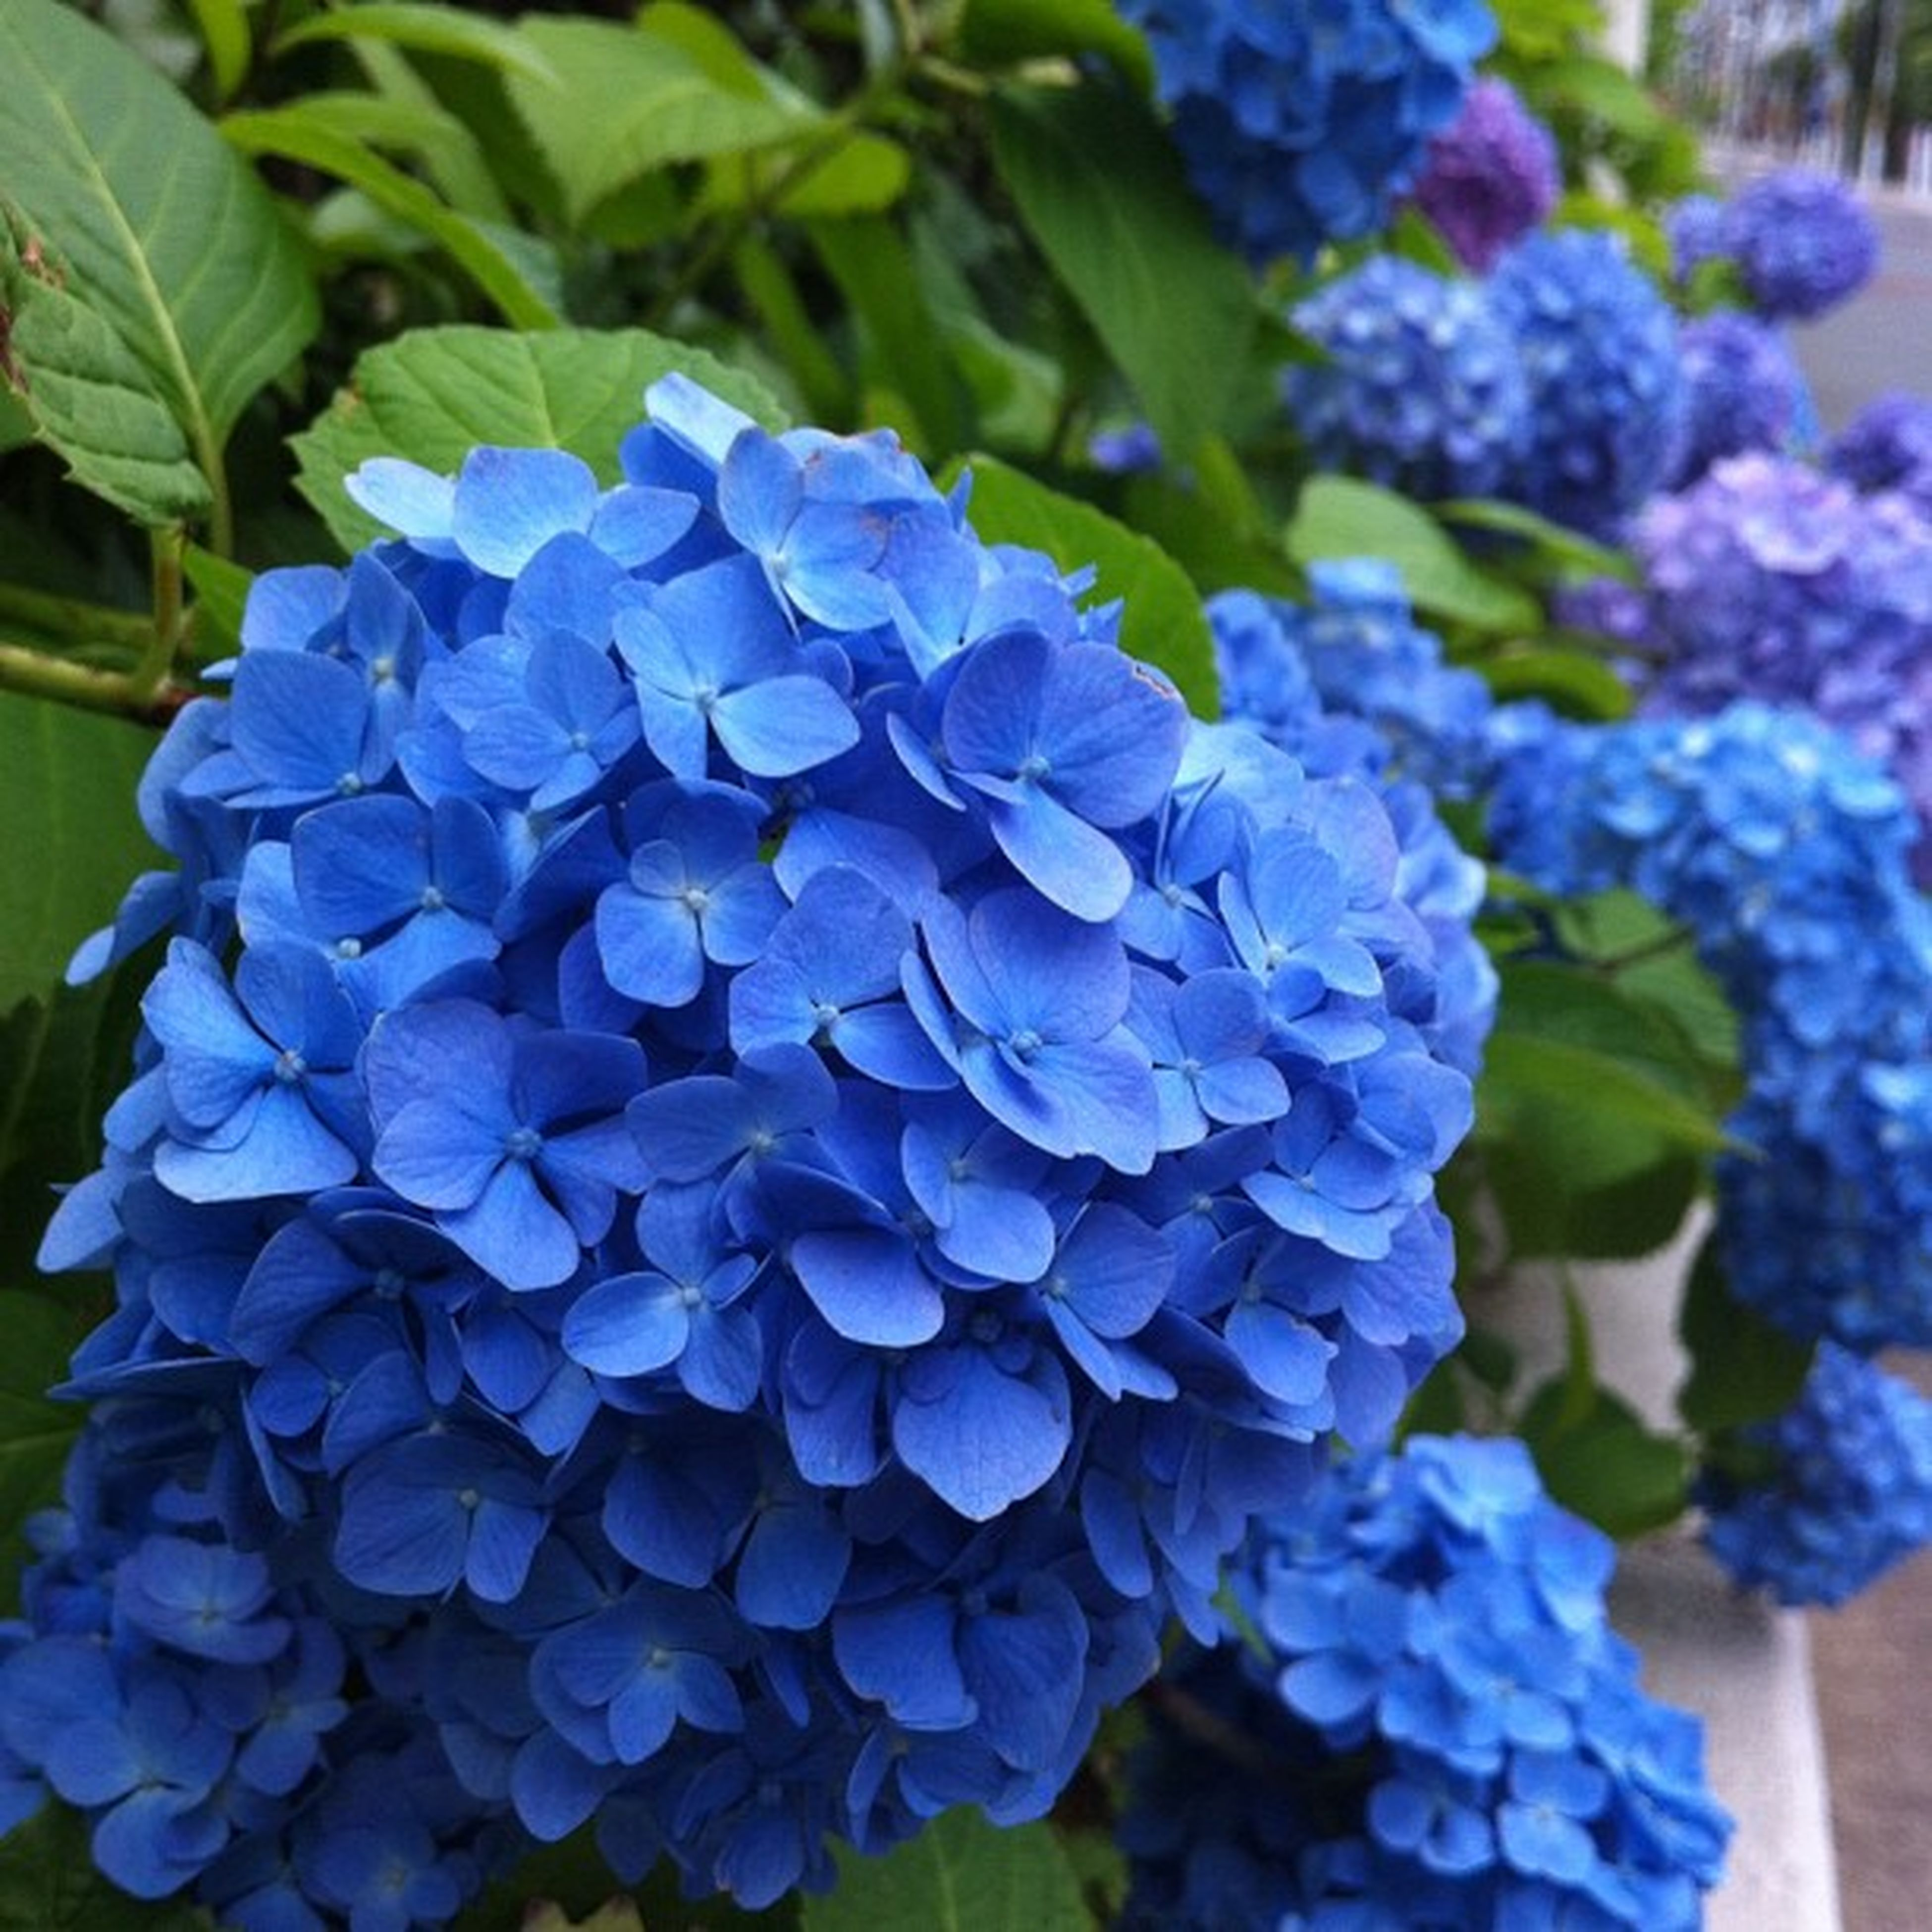 flower, purple, freshness, fragility, growth, petal, beauty in nature, flower head, plant, blue, leaf, close-up, nature, blooming, hydrangea, focus on foreground, park - man made space, in bloom, botany, high angle view